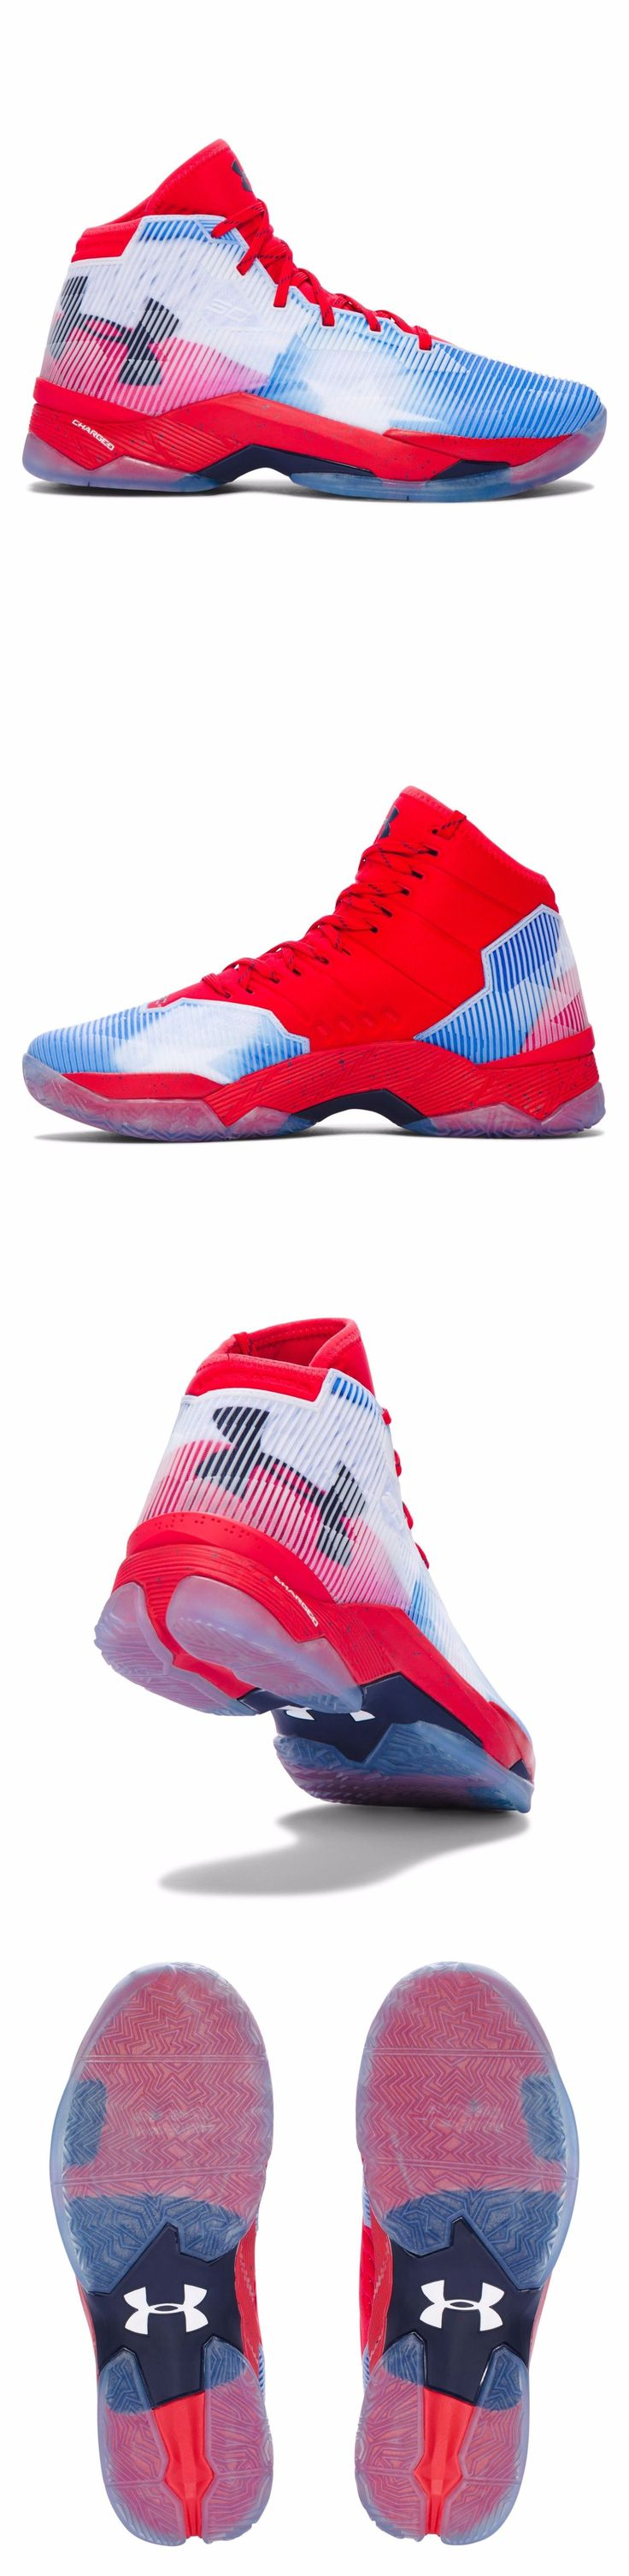 Men 158971: New Men S Under Armour Curry 2.5 Basketball Shoe - Red 1292528-601 -> BUY IT NOW ONLY: $99.99 on eBay!